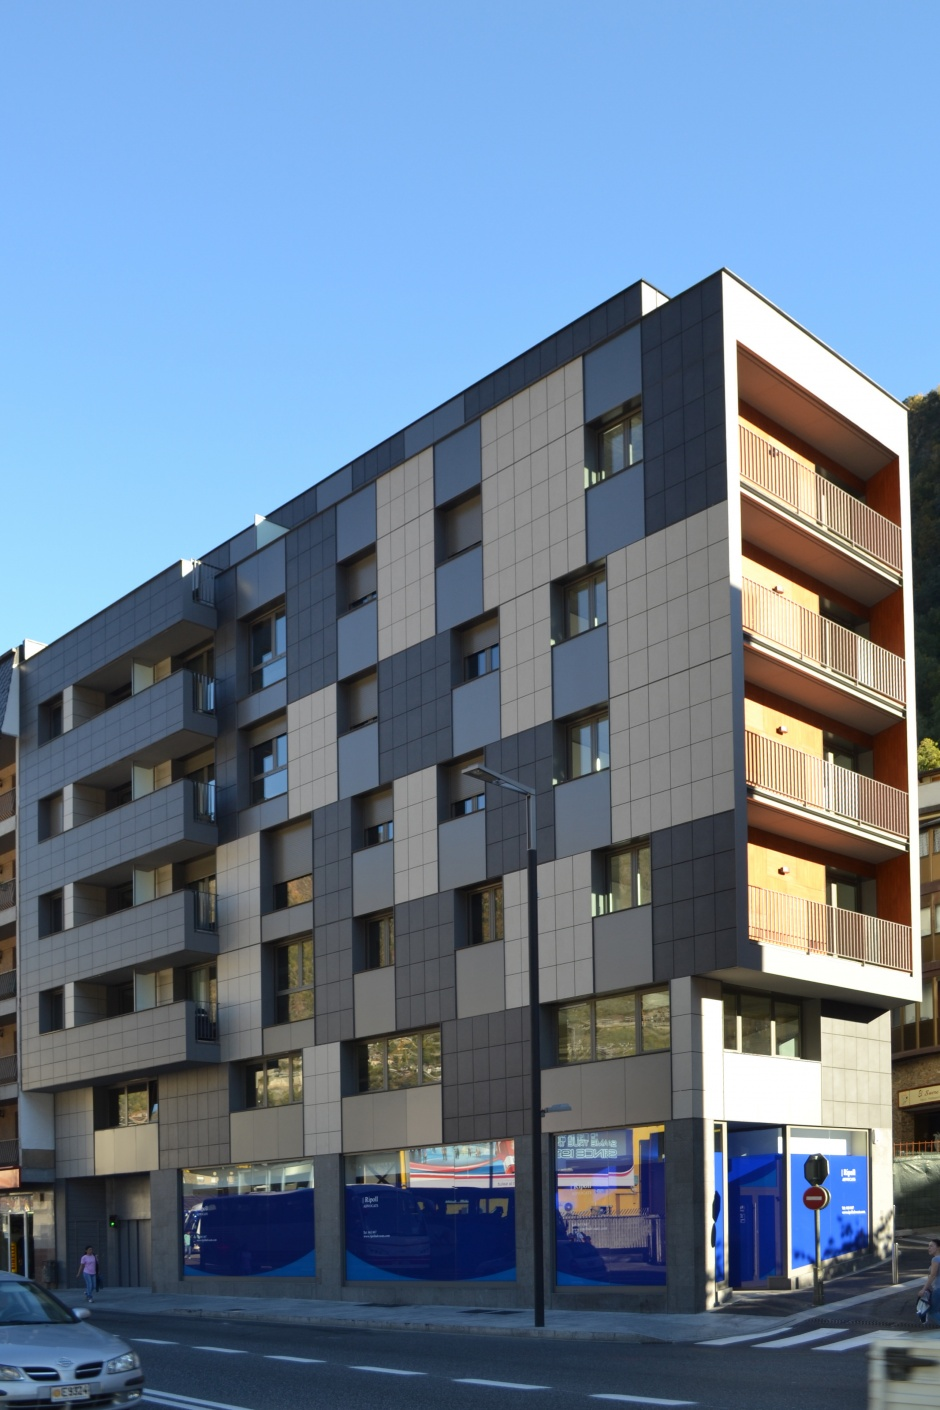 Residential, Commercial and Office Building on Av. Tarragona, 57, Architecture (Principality of Andorra)